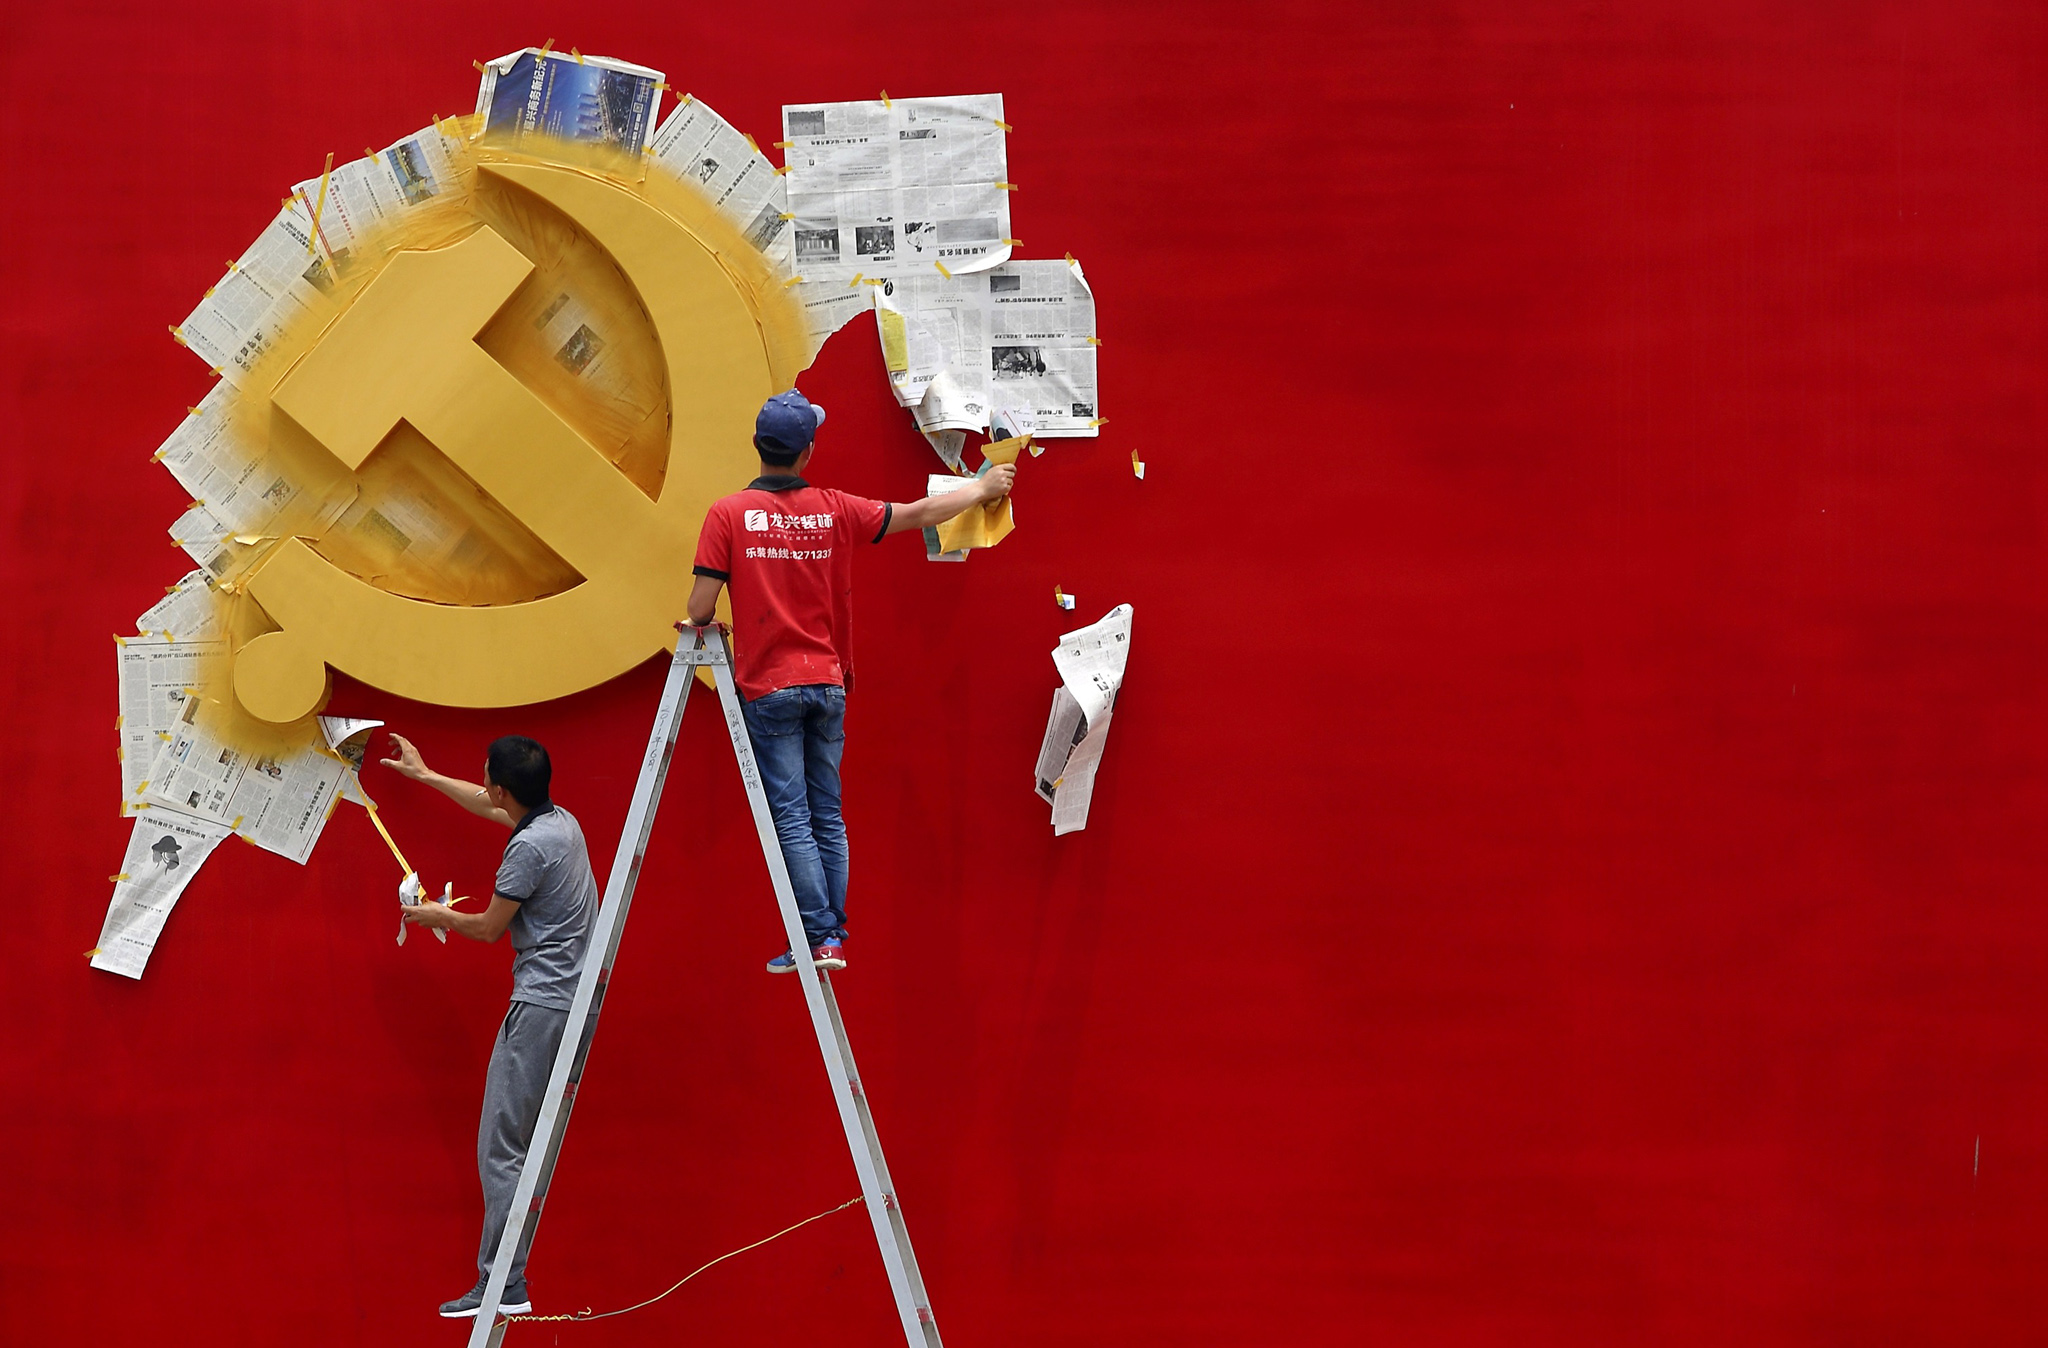 Workers peel papers off a wall as they re-paint the Chinese Communist Party flag on it at the Nanhu revolution memorial museum in Jiaxing...Workers peel papers off a wall as they re-paint the Chinese Communist Party flag on it at the Nanhu revolution memorial museum in Jiaxing, Zhejiang province May 21, 2014. REUTERS/Chance Chan (CHINA - Tags: POLITICS SOCIETY)